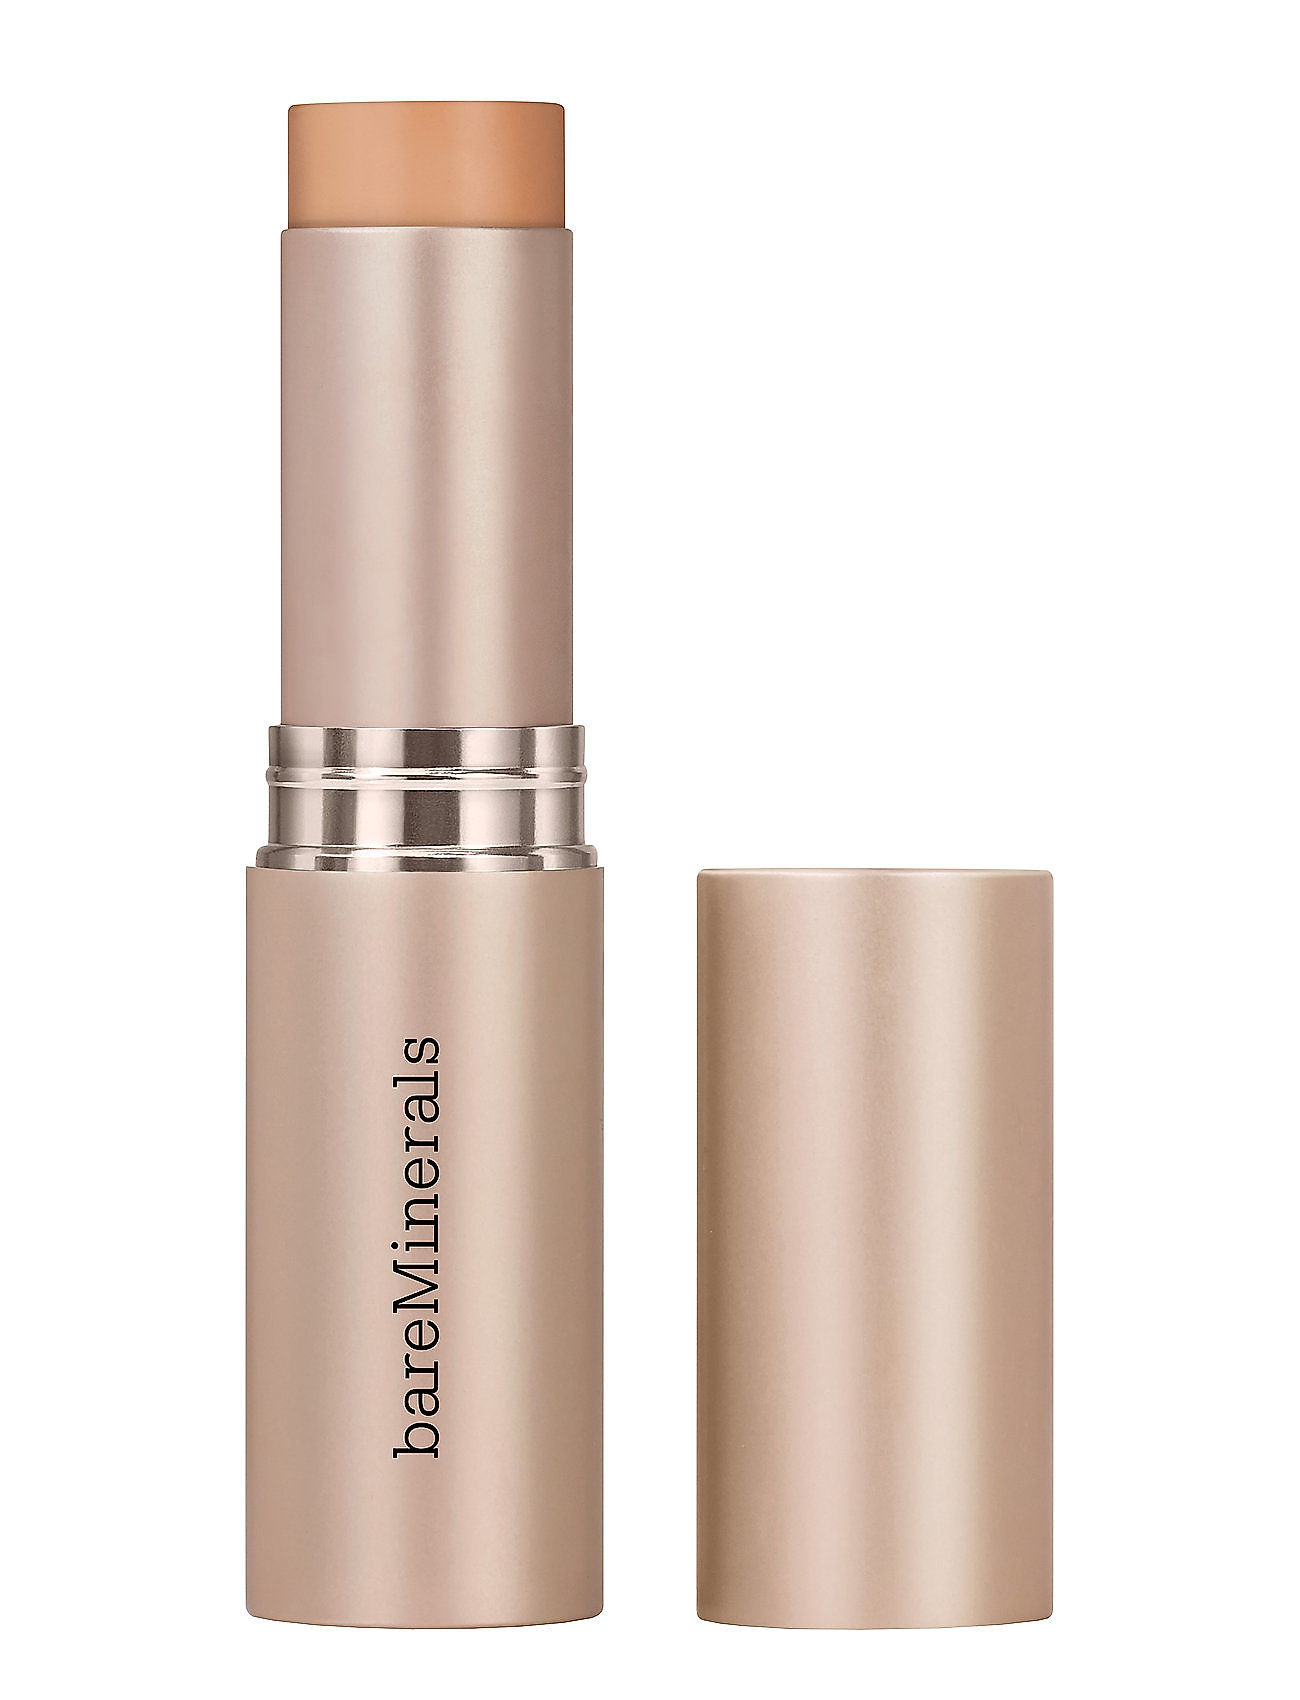 Image of Complexion Rescue Hydrating Foundation Stick Spf 25 Foundation Makeup BareMinerals (3250586903)